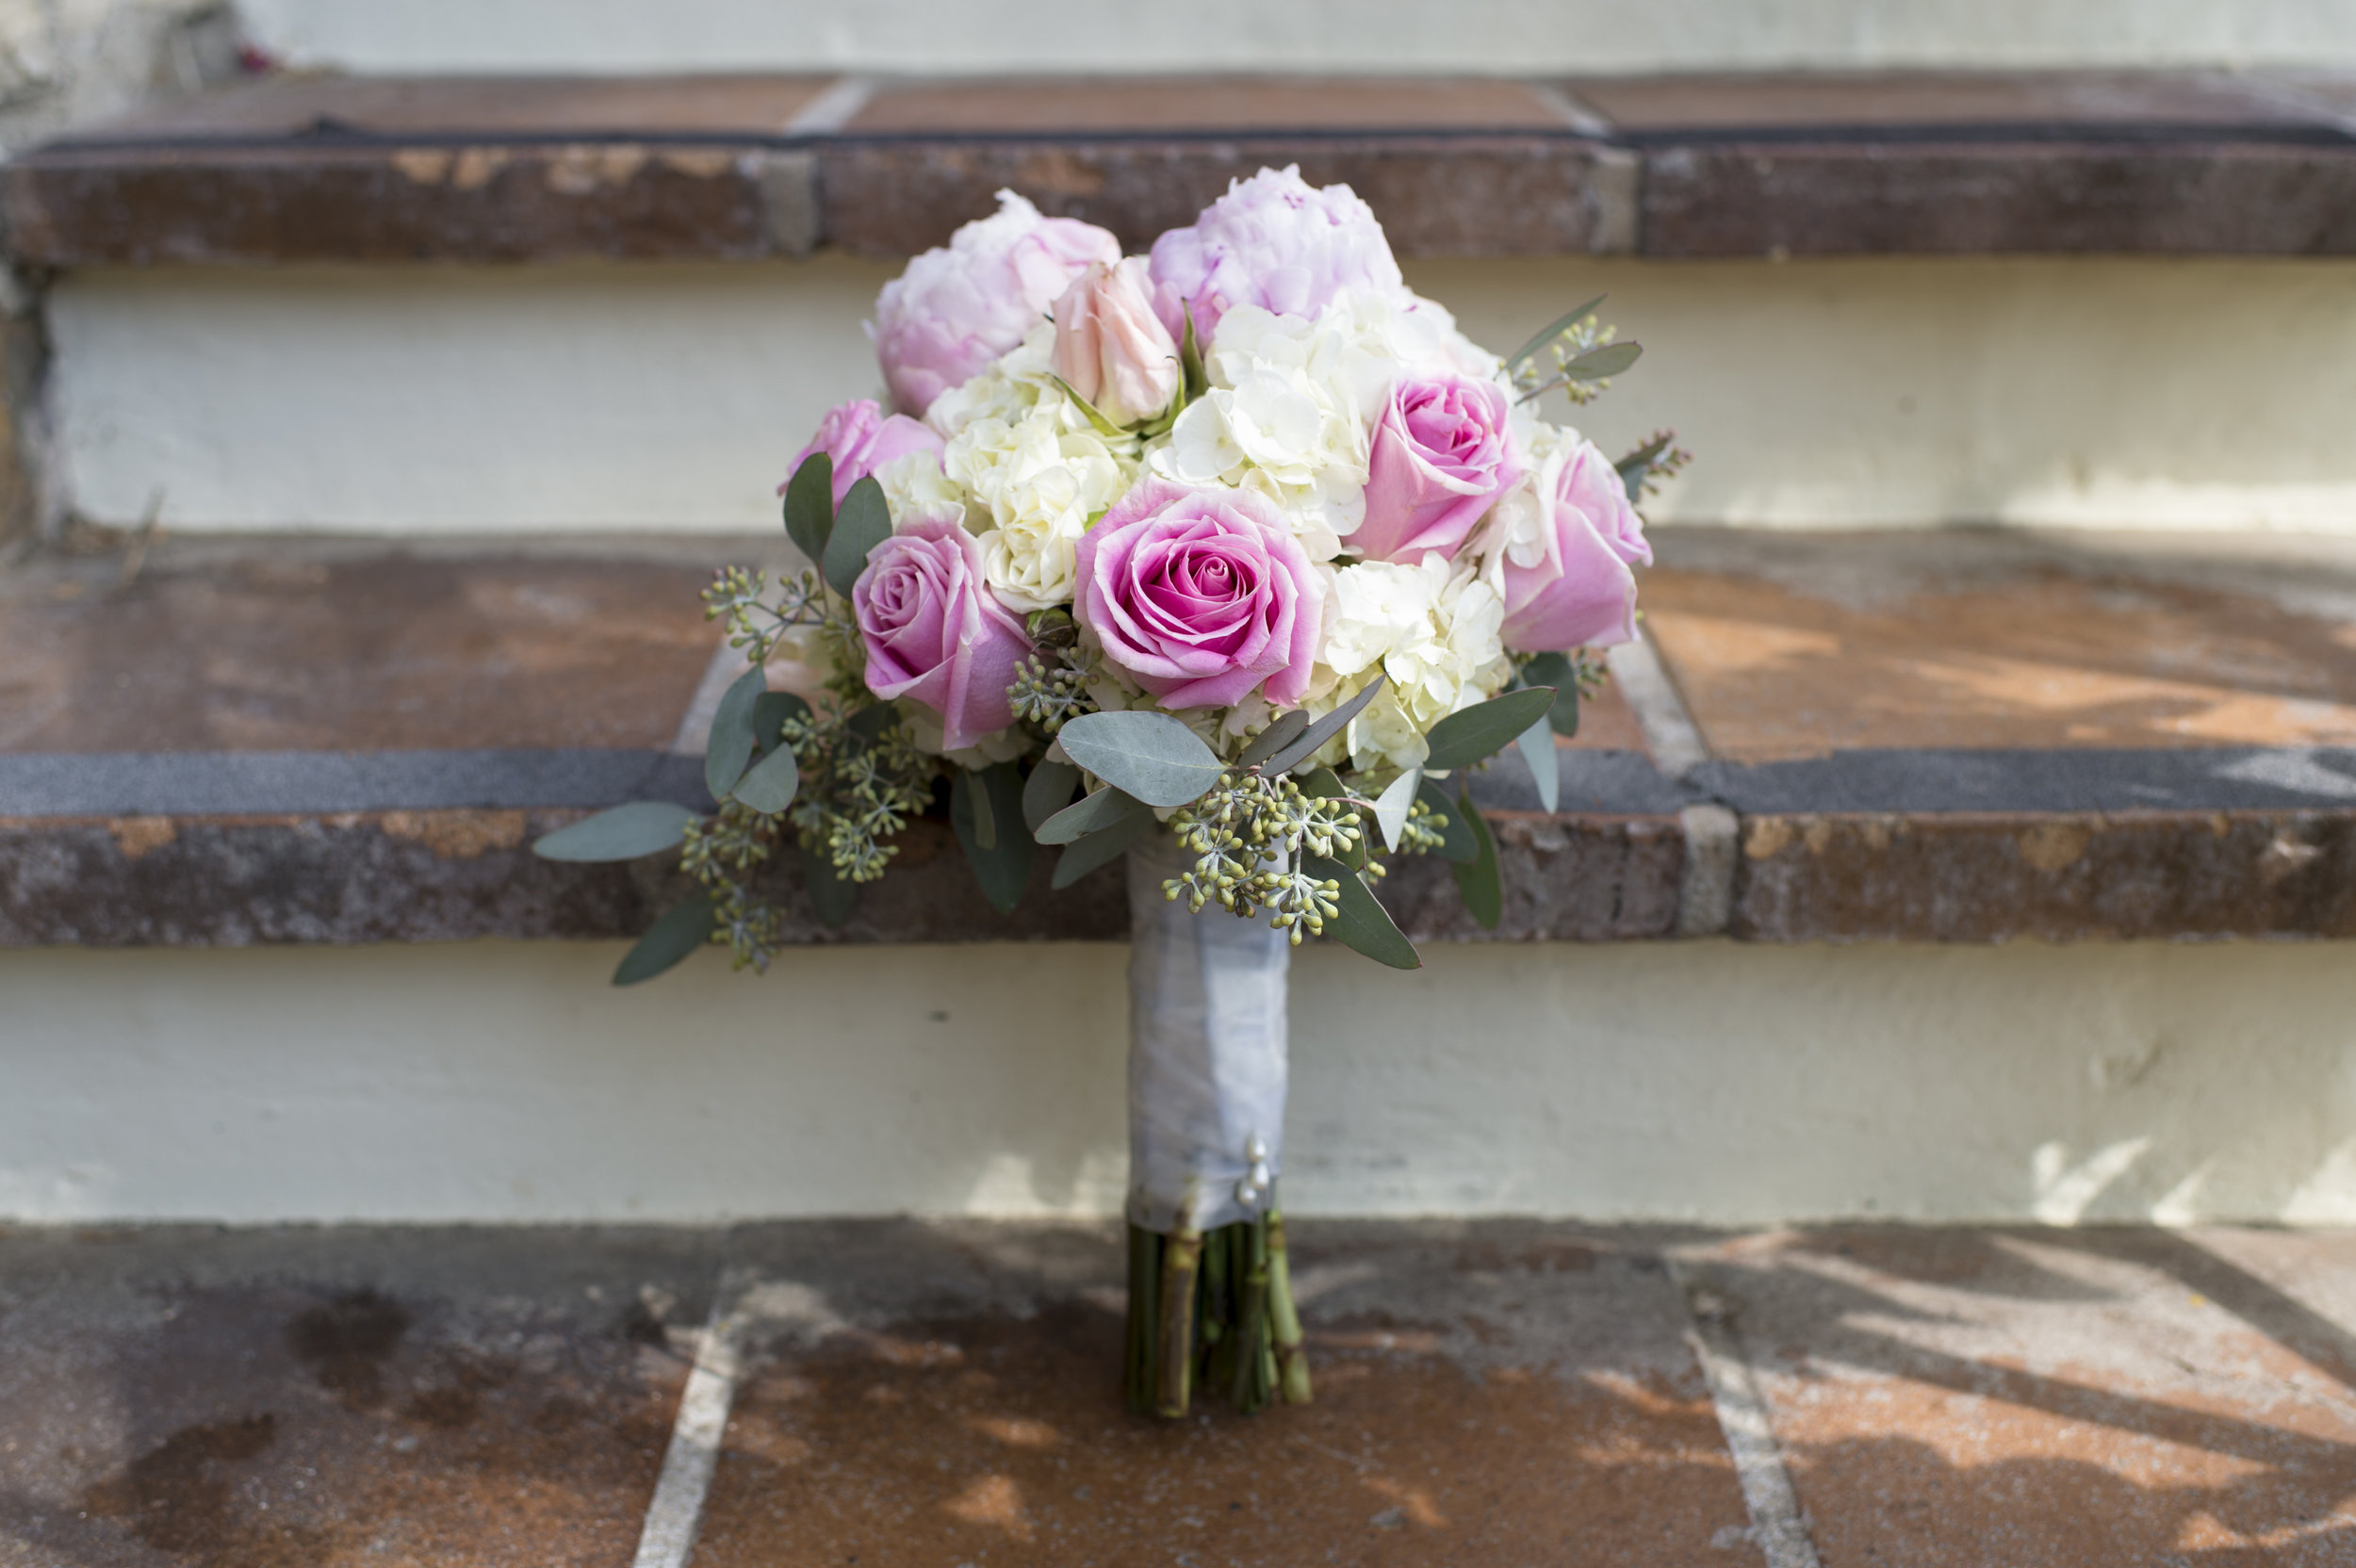 White and Blush Wedding Bouquet - A Romantic Bel Air Bay Club Ocean-View Wedding - Southern California Wedding - Kevin Dinh Photography